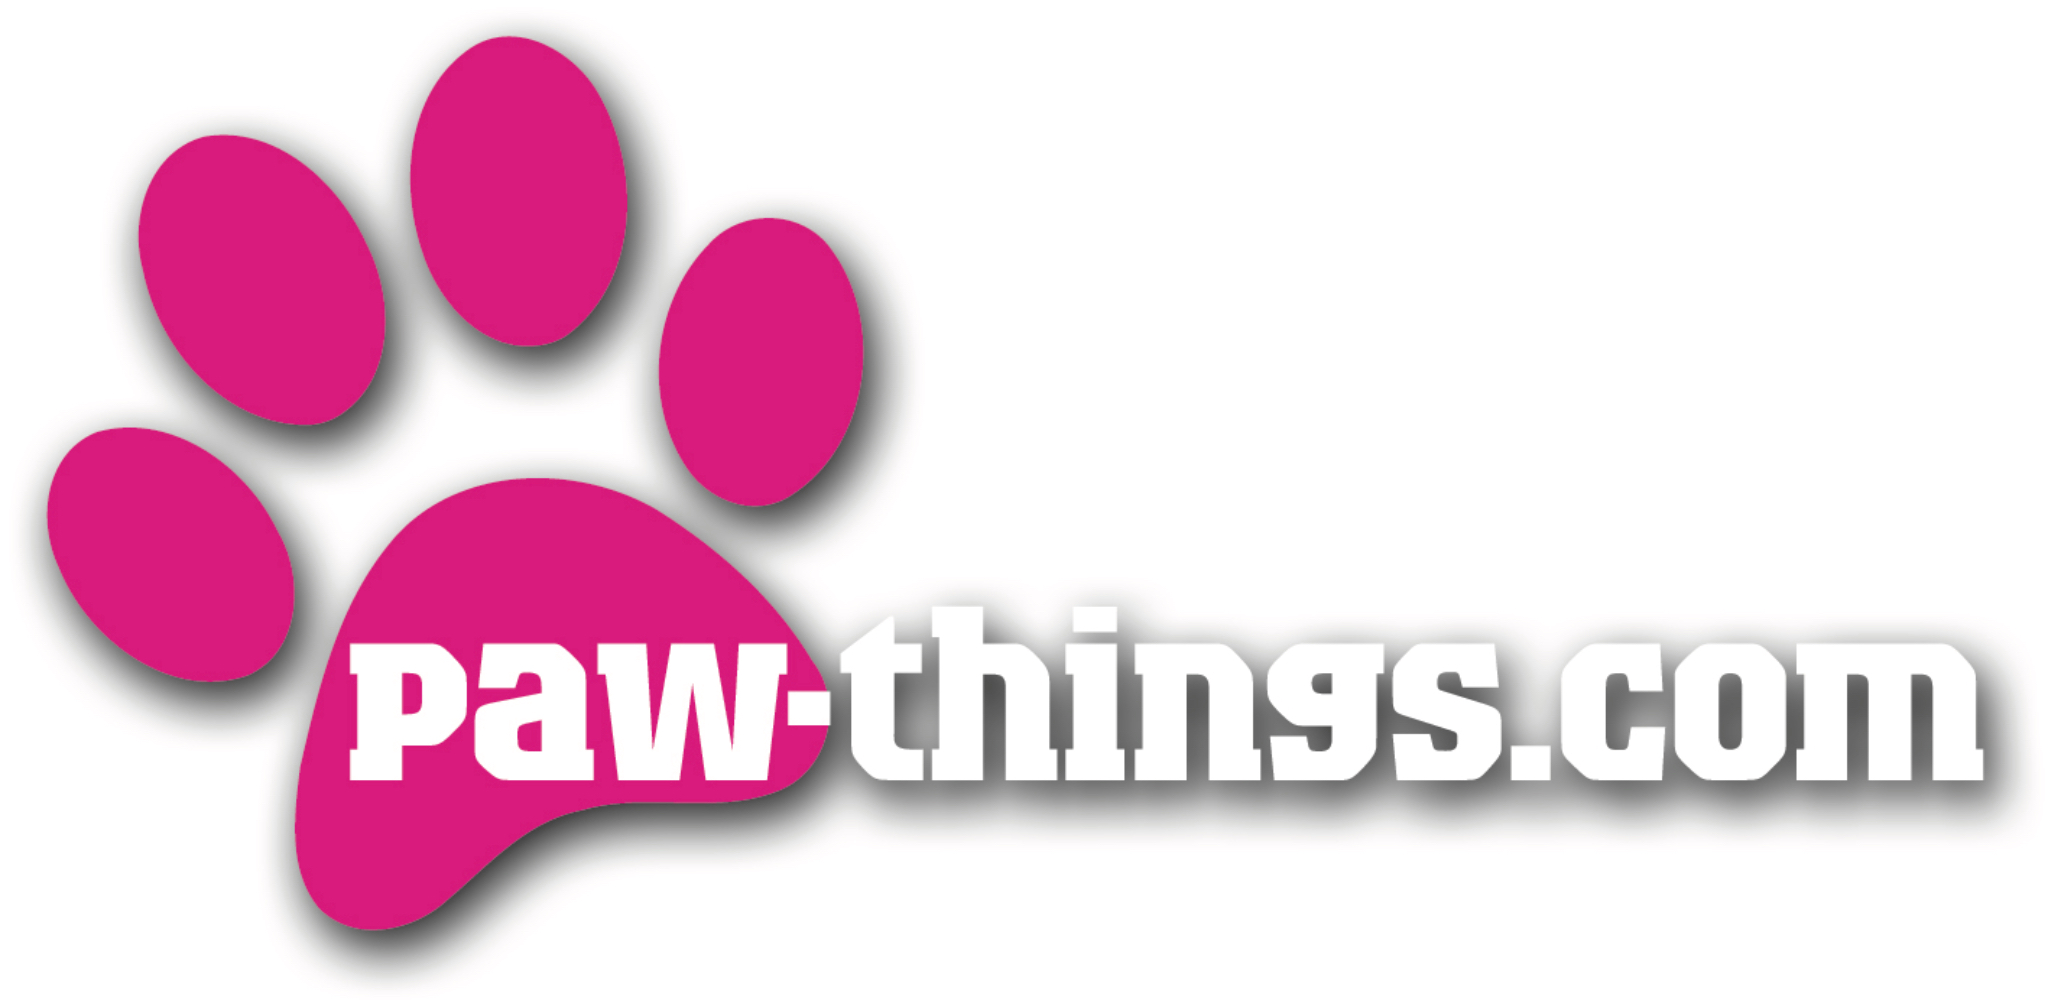 paw-things.com